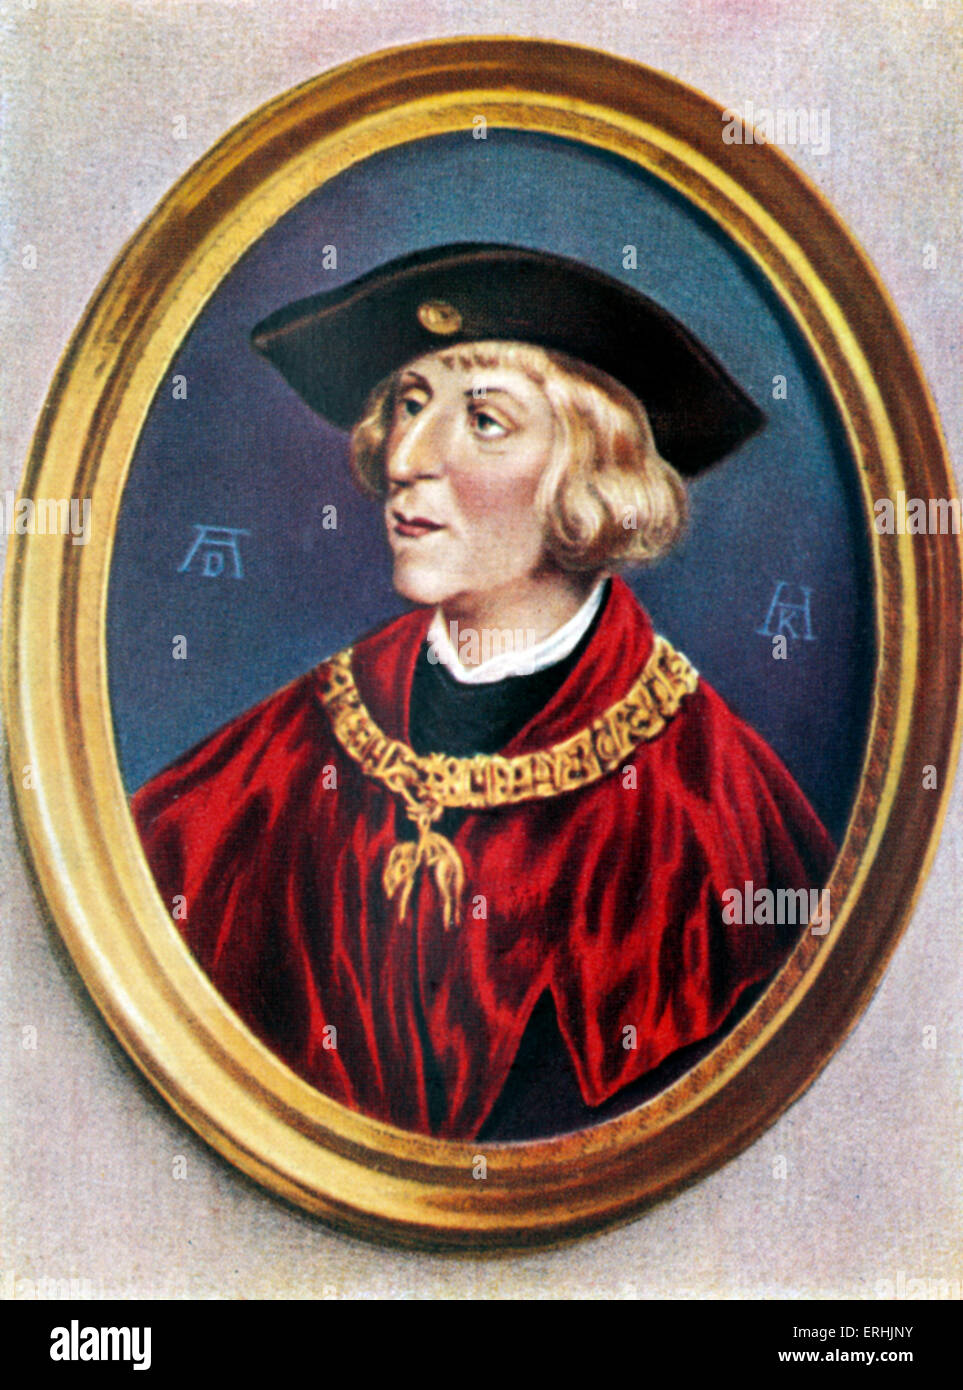 Maximilian I of Habsburg. Portrait of the Kaiser. Holy Roman Emperor. After a portrait by Albrecht Durer. 22 March - Stock Image